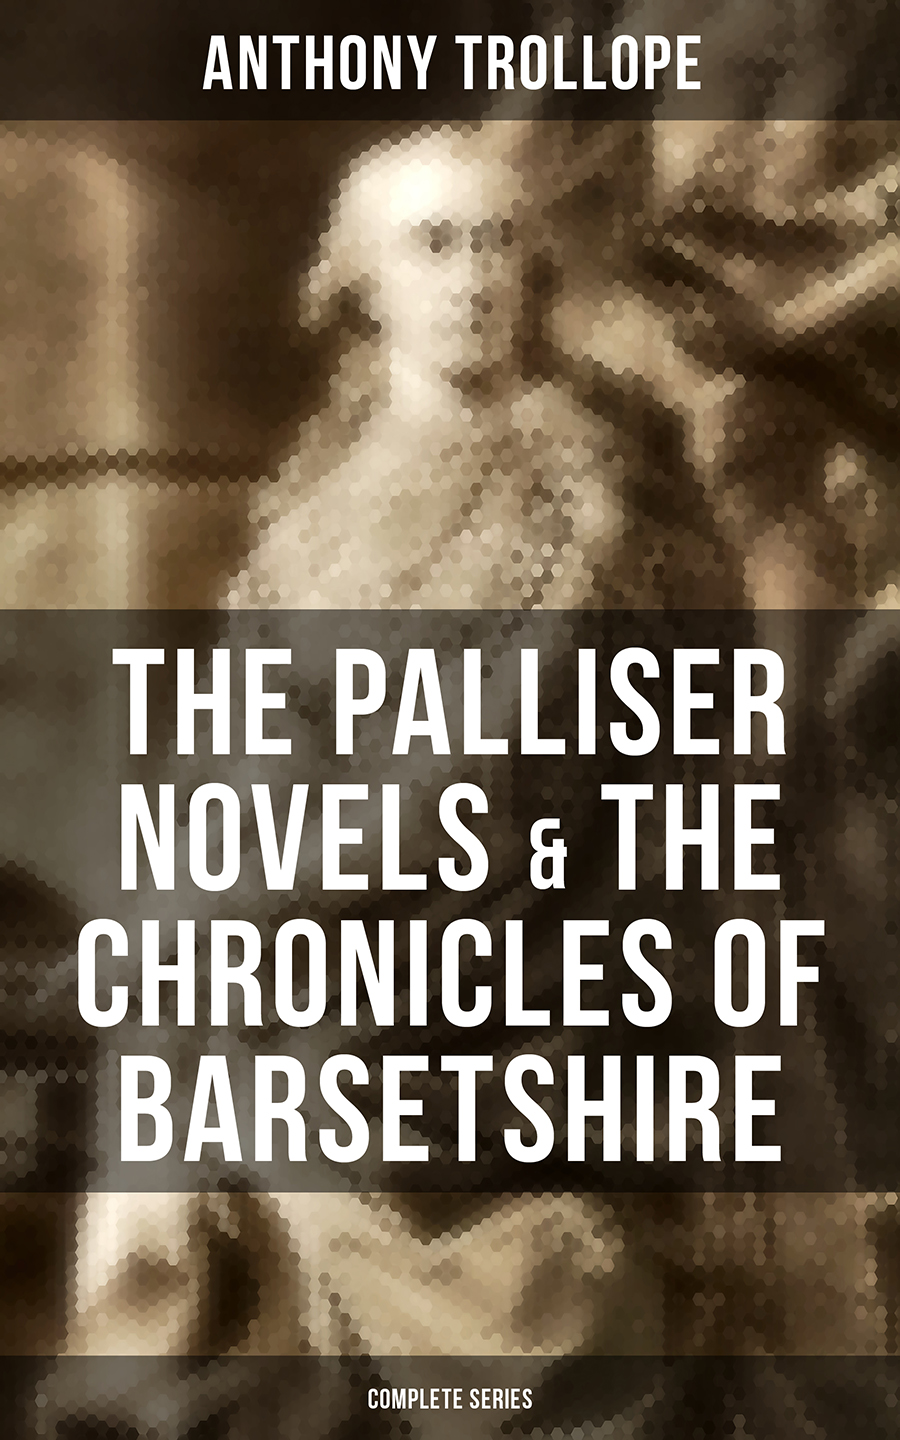 Anthony Trollope THE PALLISER NOVELS & THE CHRONICLES OF BARSETSHIRE: Complete Series цена и фото